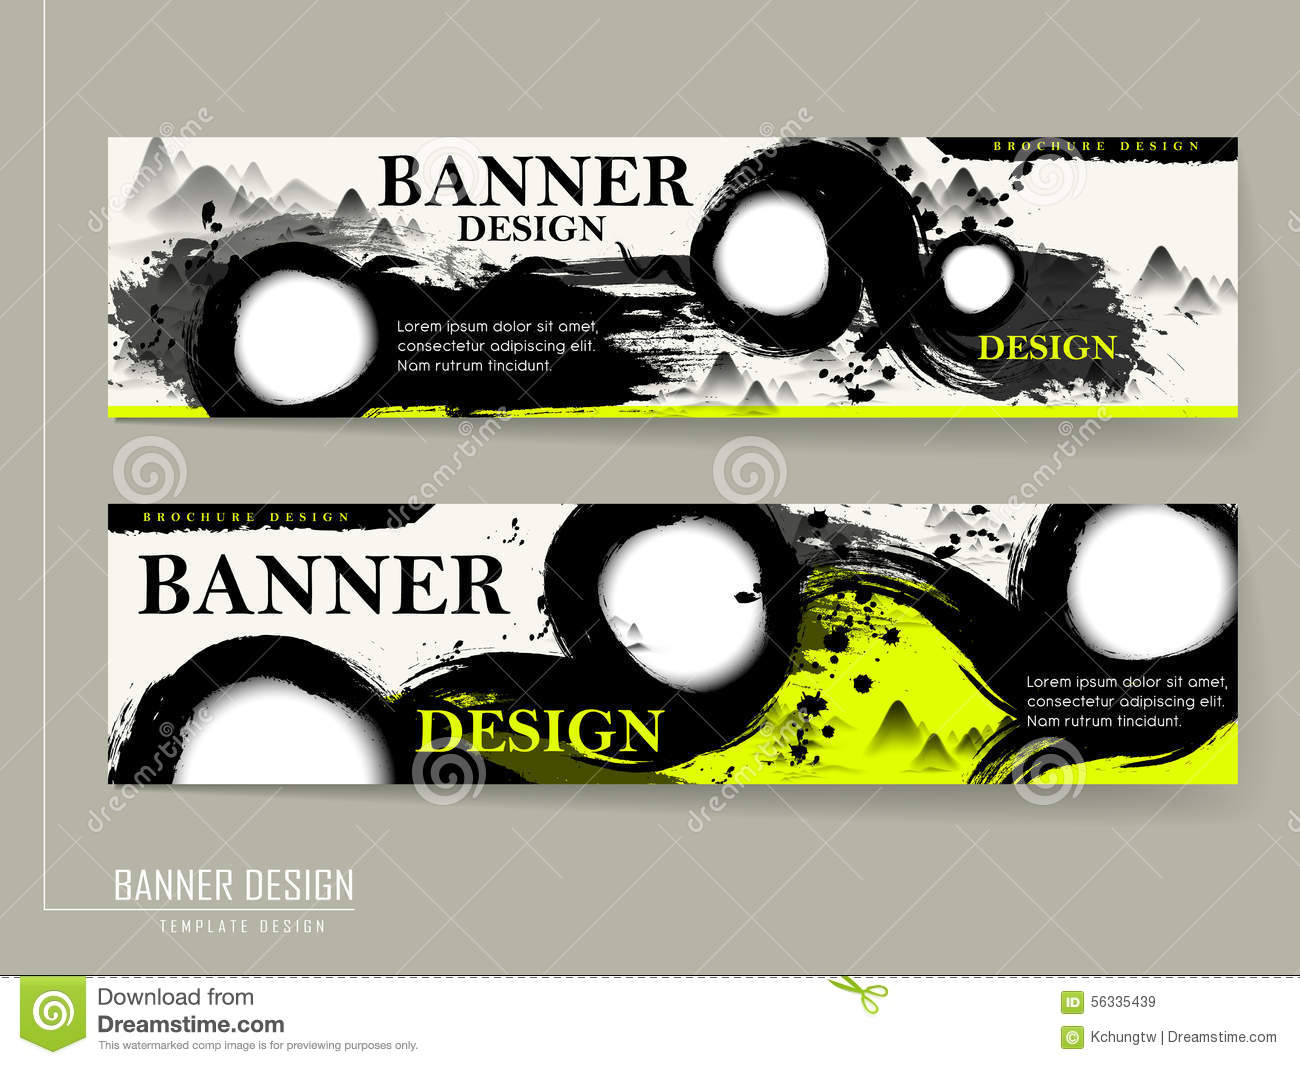 Attractive banner design with calligraphy stroke stock vector